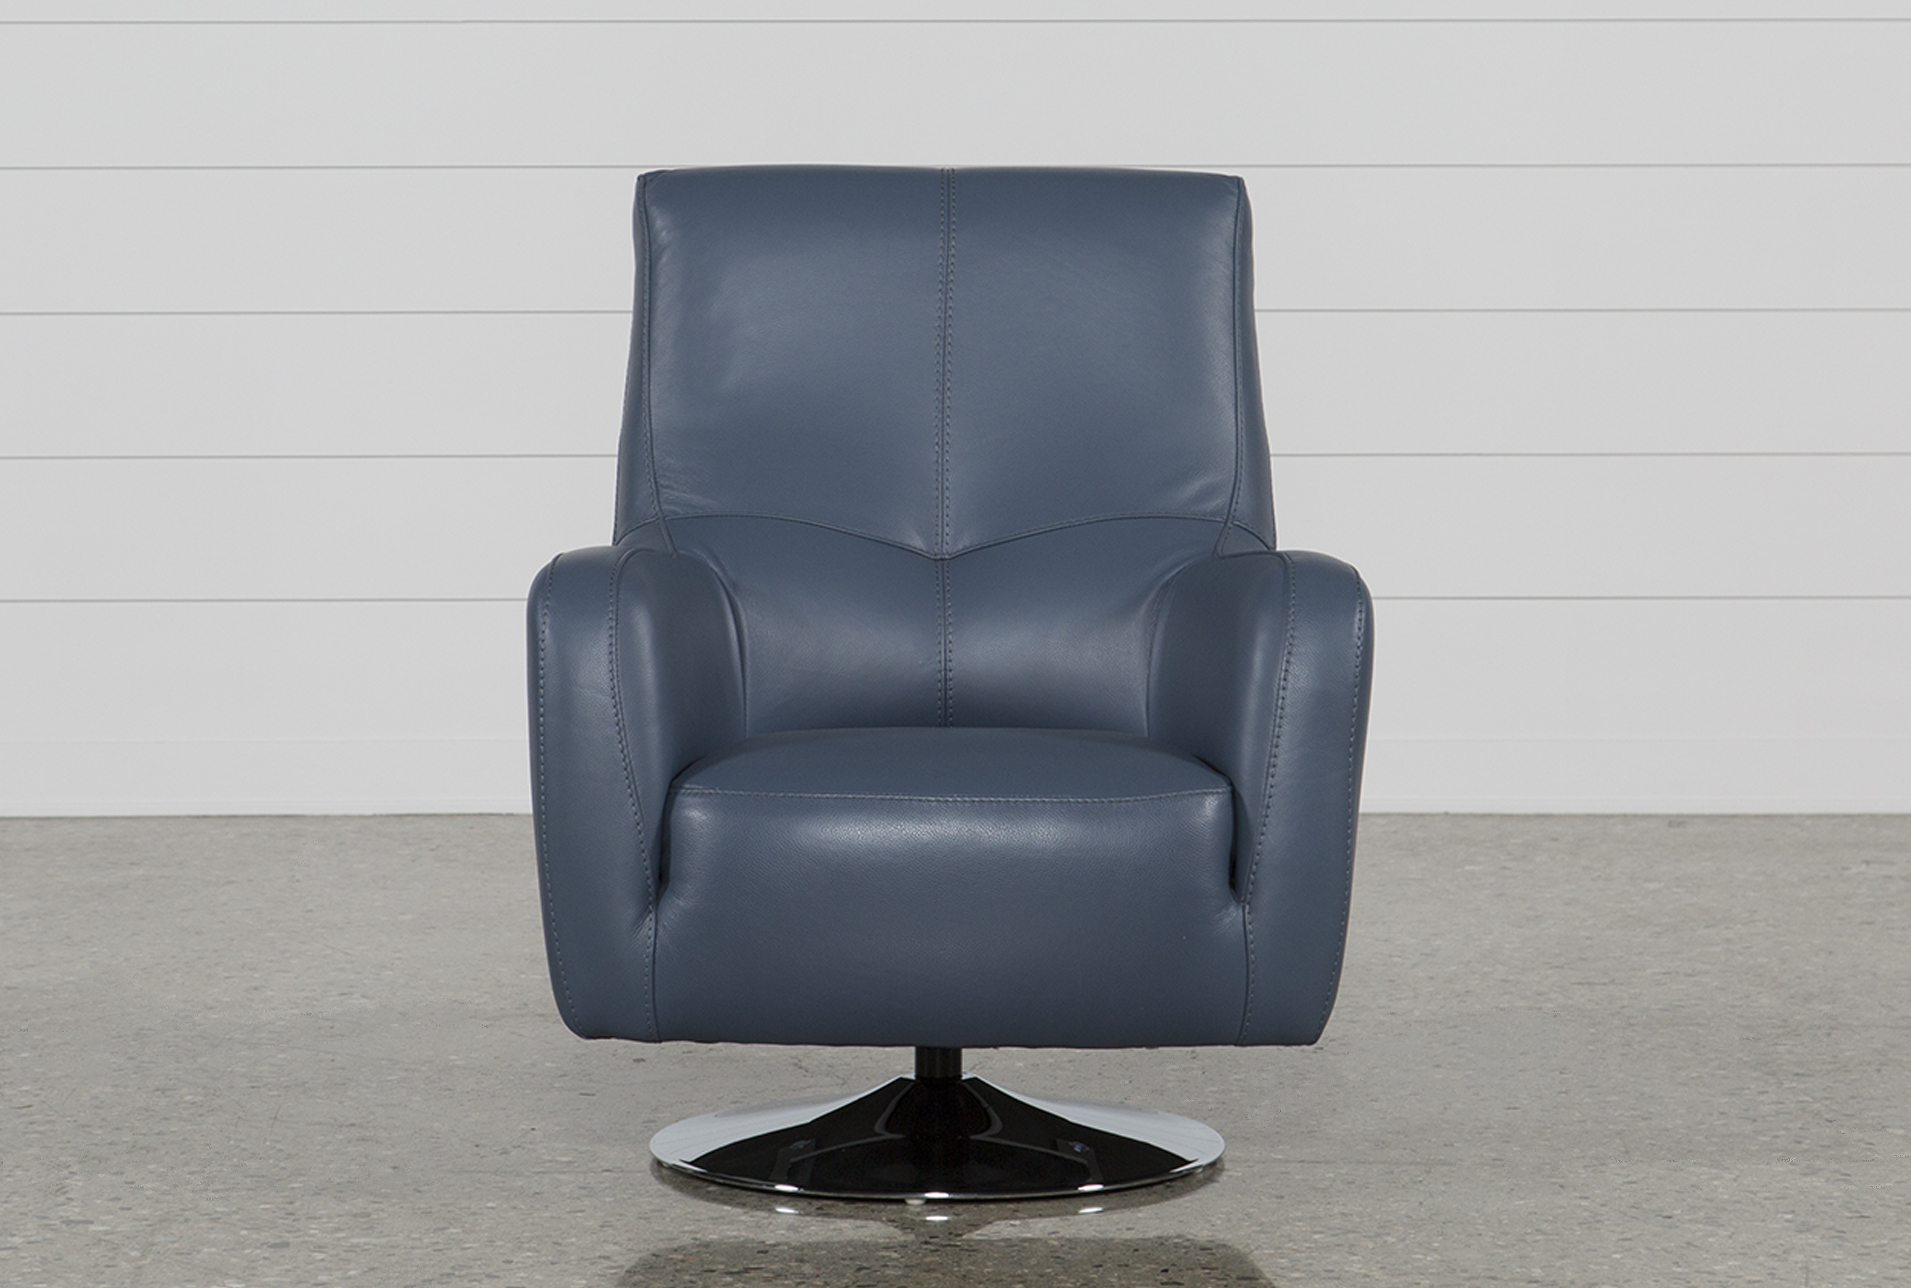 Kawai Leather Swivel Chair | Products | Pinterest | Leather Swivel Throughout Amala Dark Grey Leather Reclining Swivel Chairs (Image 15 of 25)